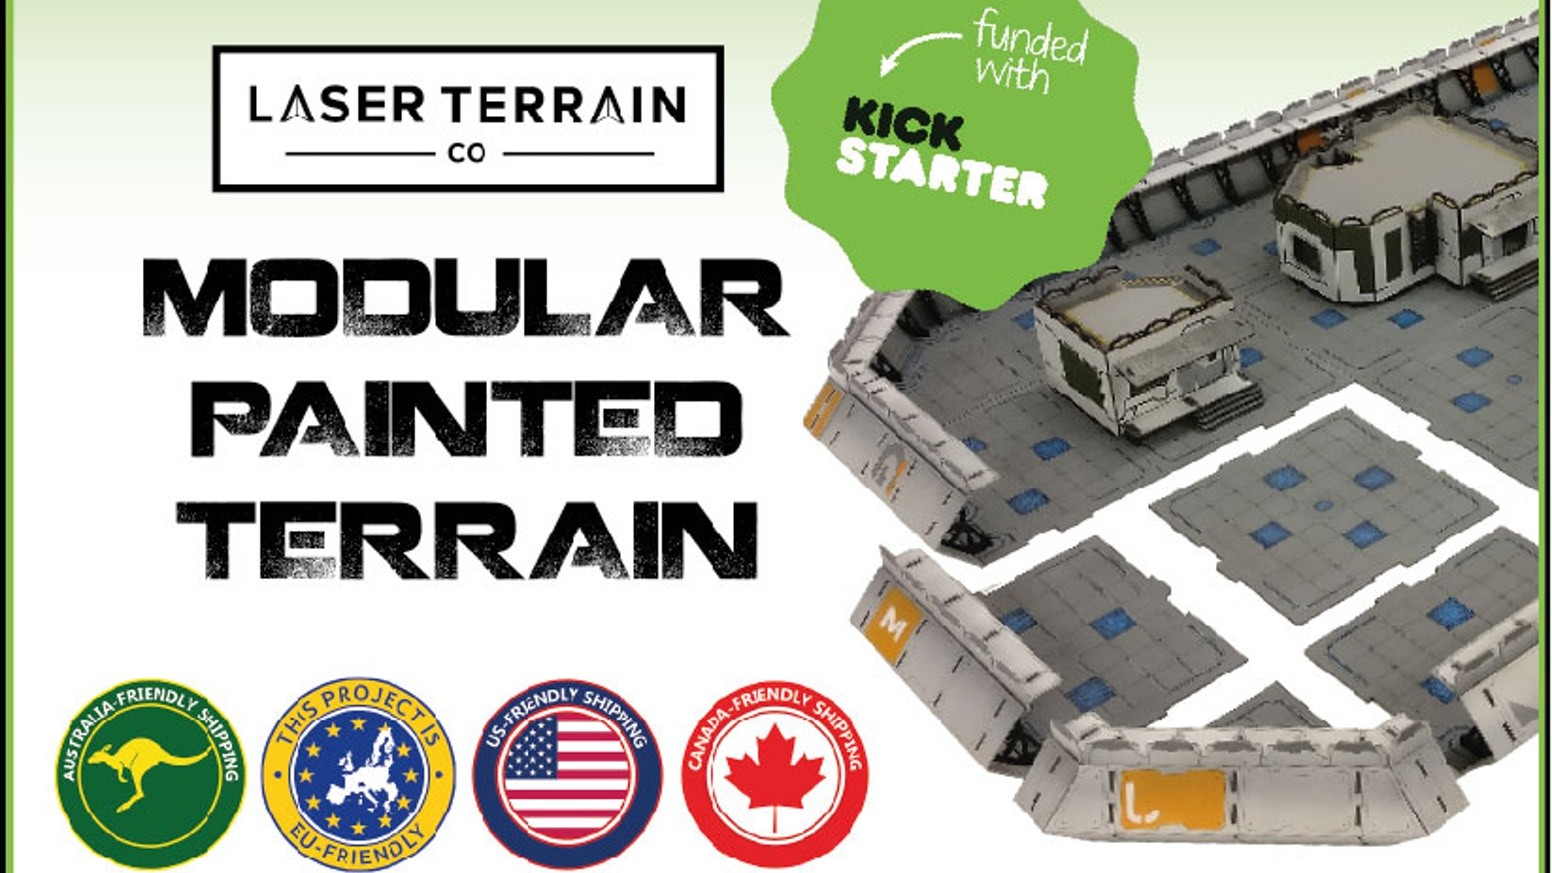 Creating the next generation of modular pre painted terrain for 28mm and 10mm wargaming systems.